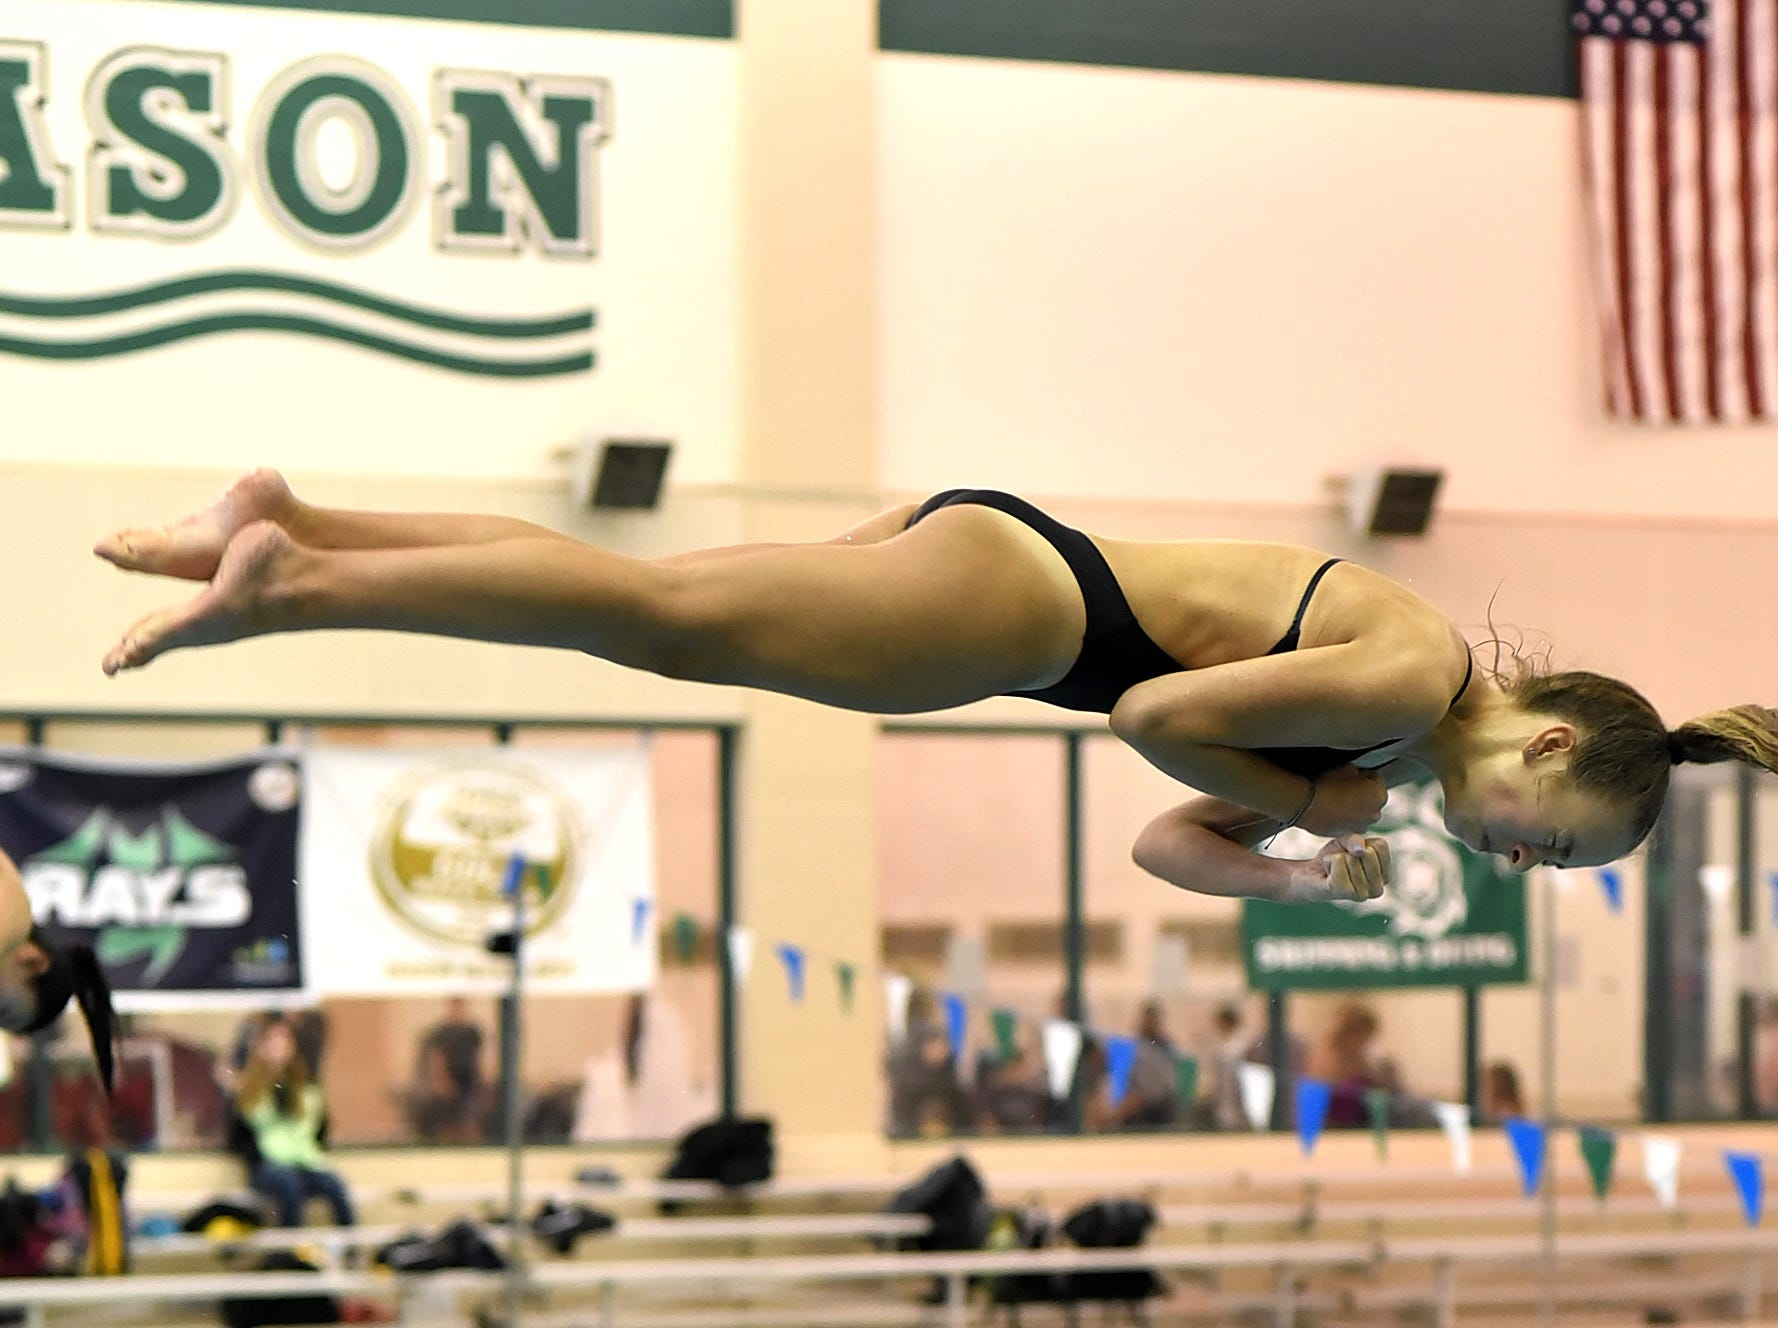 Gracie Brossart of Mason is eyes wide shut and in horizontal form at the Southwest Ohio Swimming and Diving Classic, January 19, 2019.